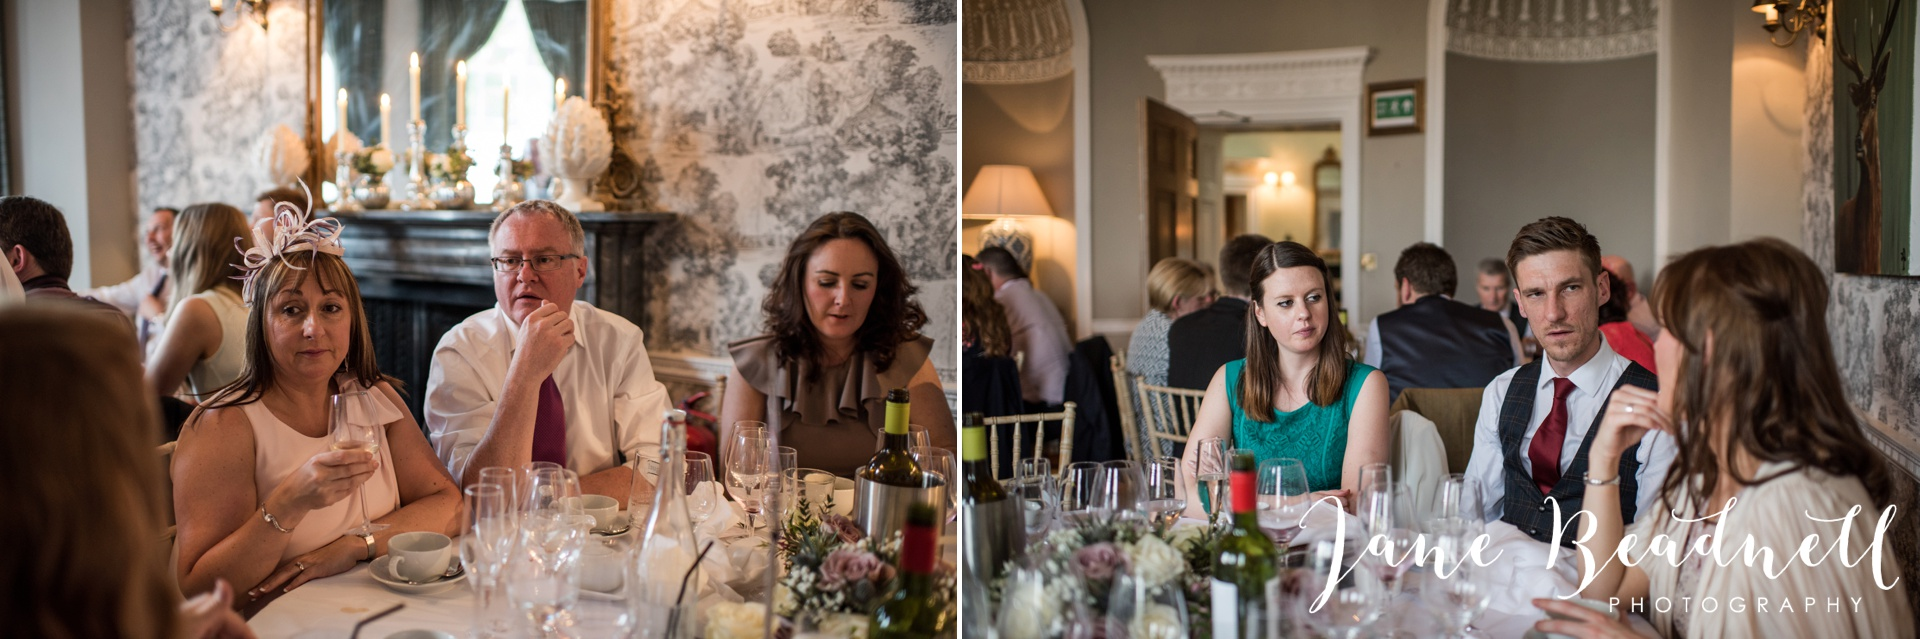 Middleton Lodge wedding photography by fine art wedding photographer Jane Beadnell_0109